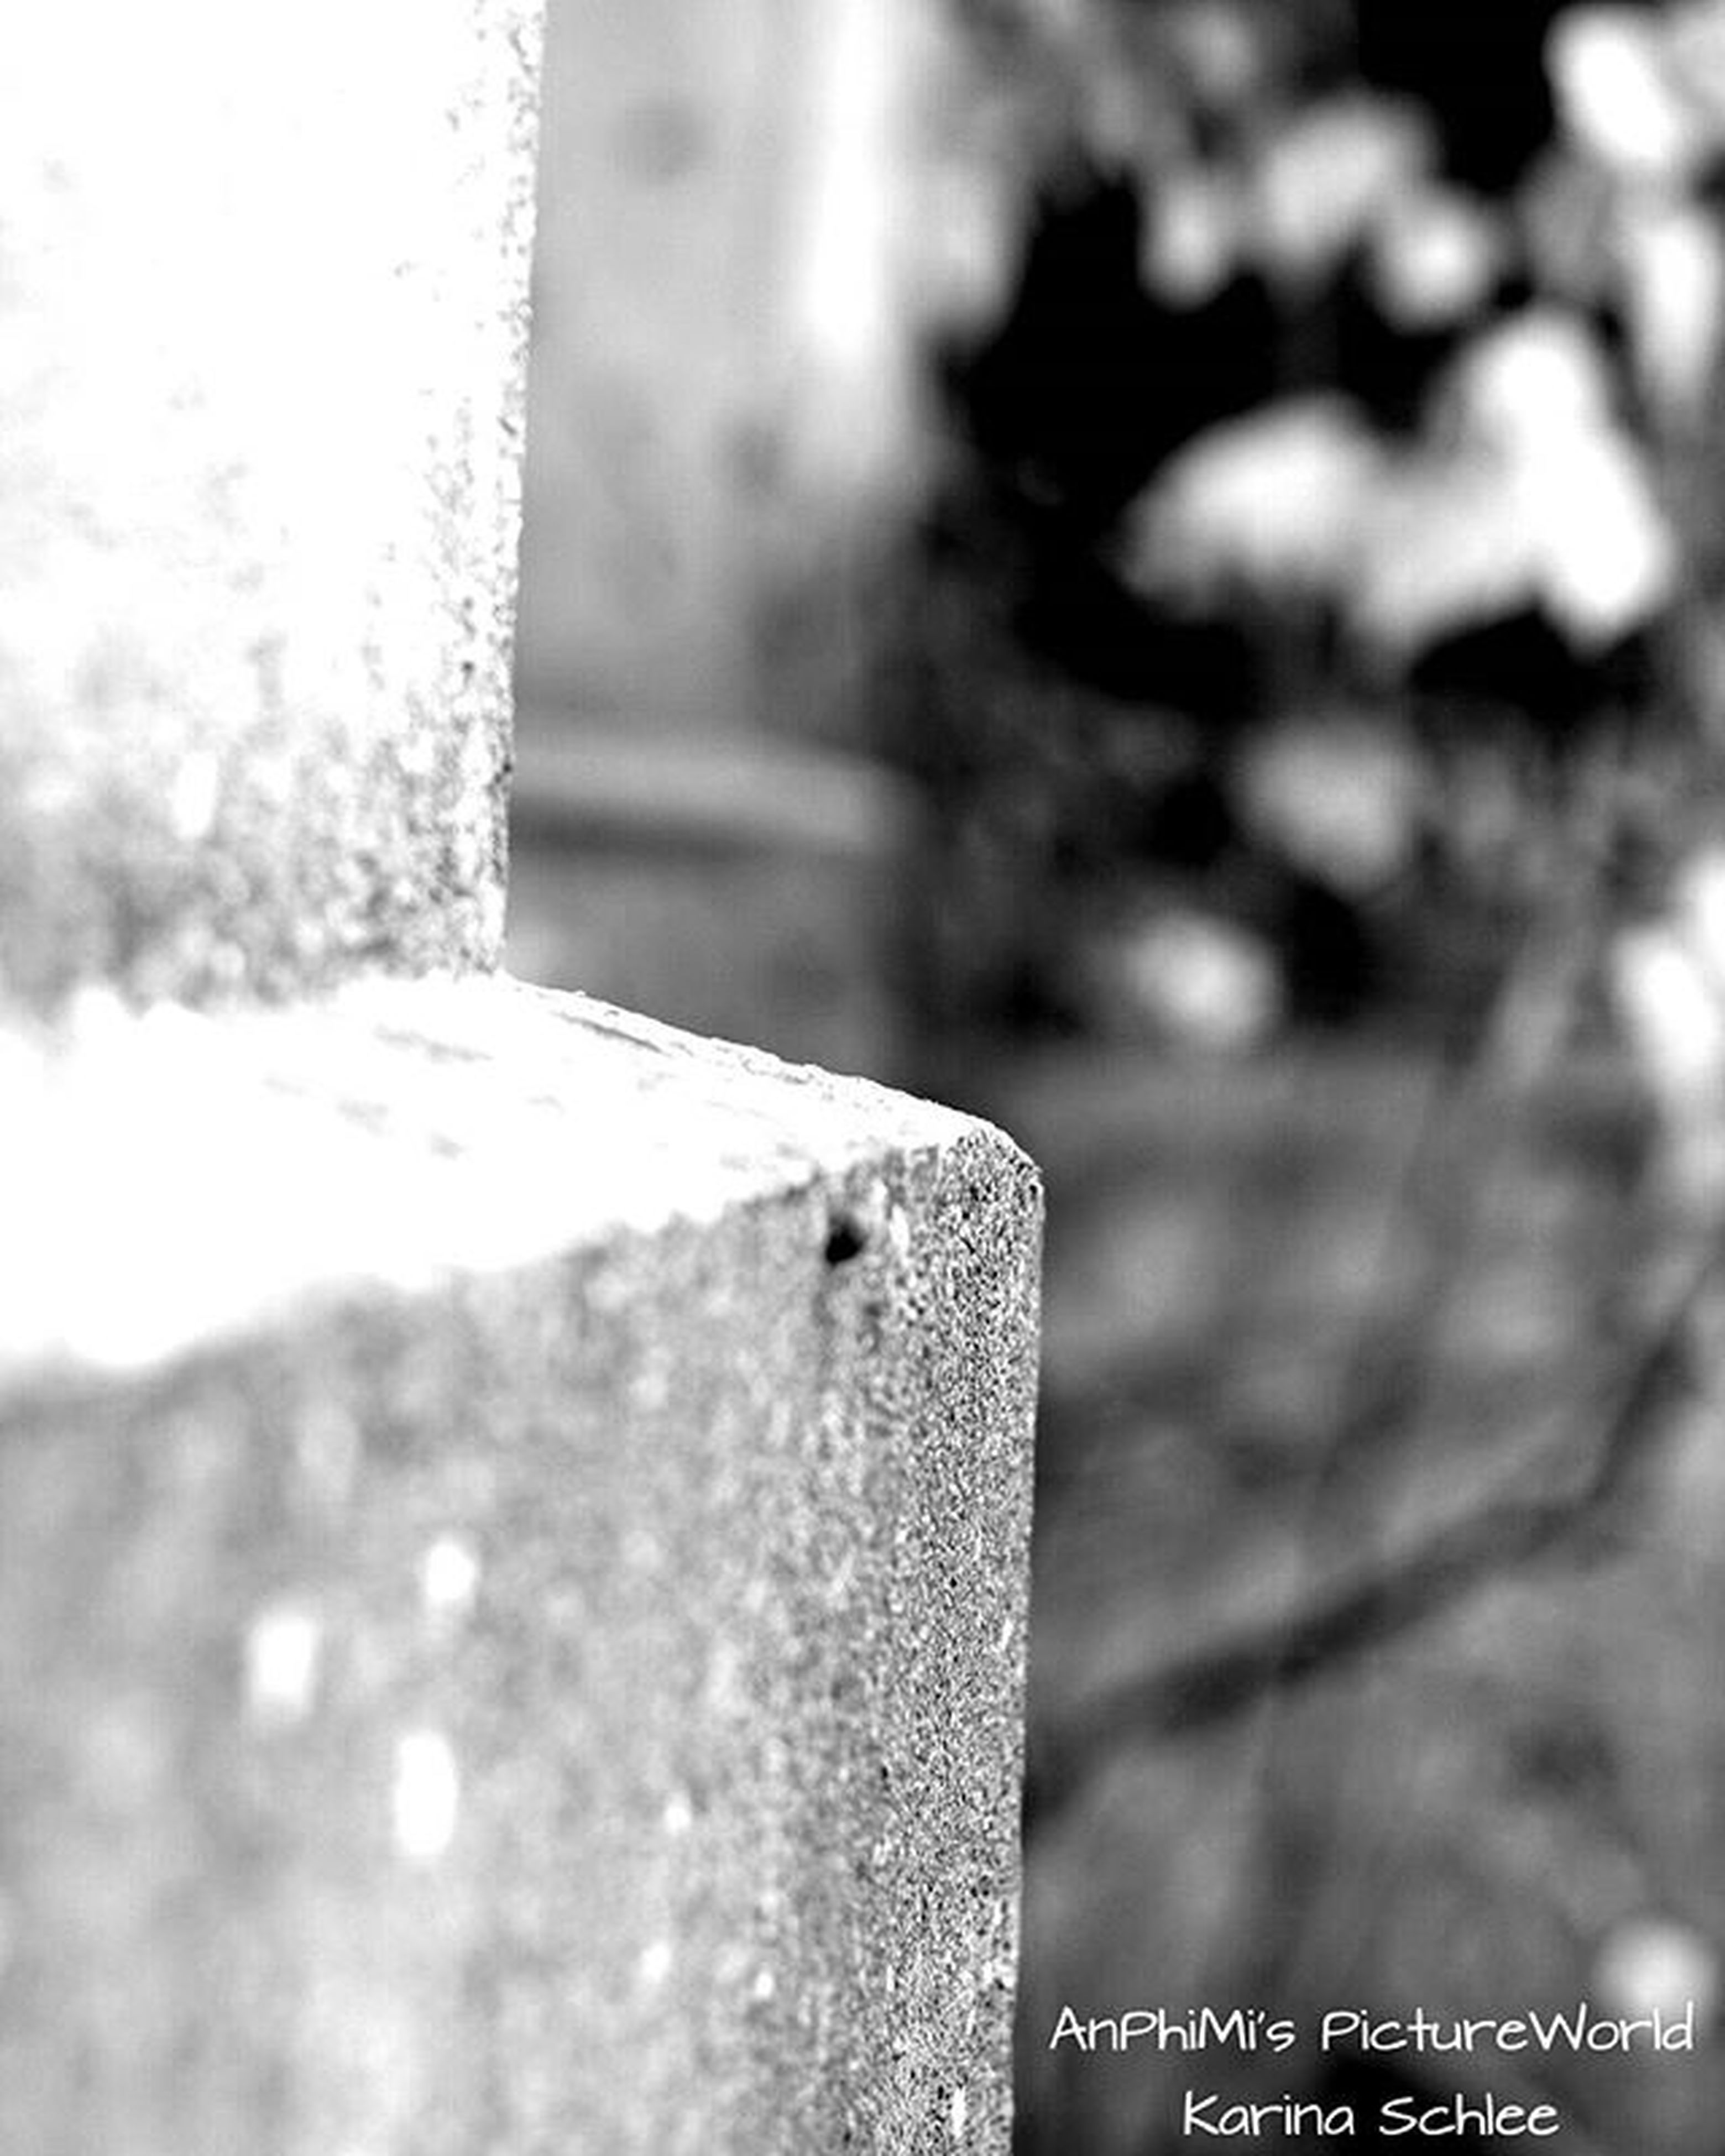 focus on foreground, close-up, selective focus, metal, day, part of, outdoors, rusty, cropped, no people, old, metallic, detail, nature, weathered, damaged, textured, danger, built structure, text